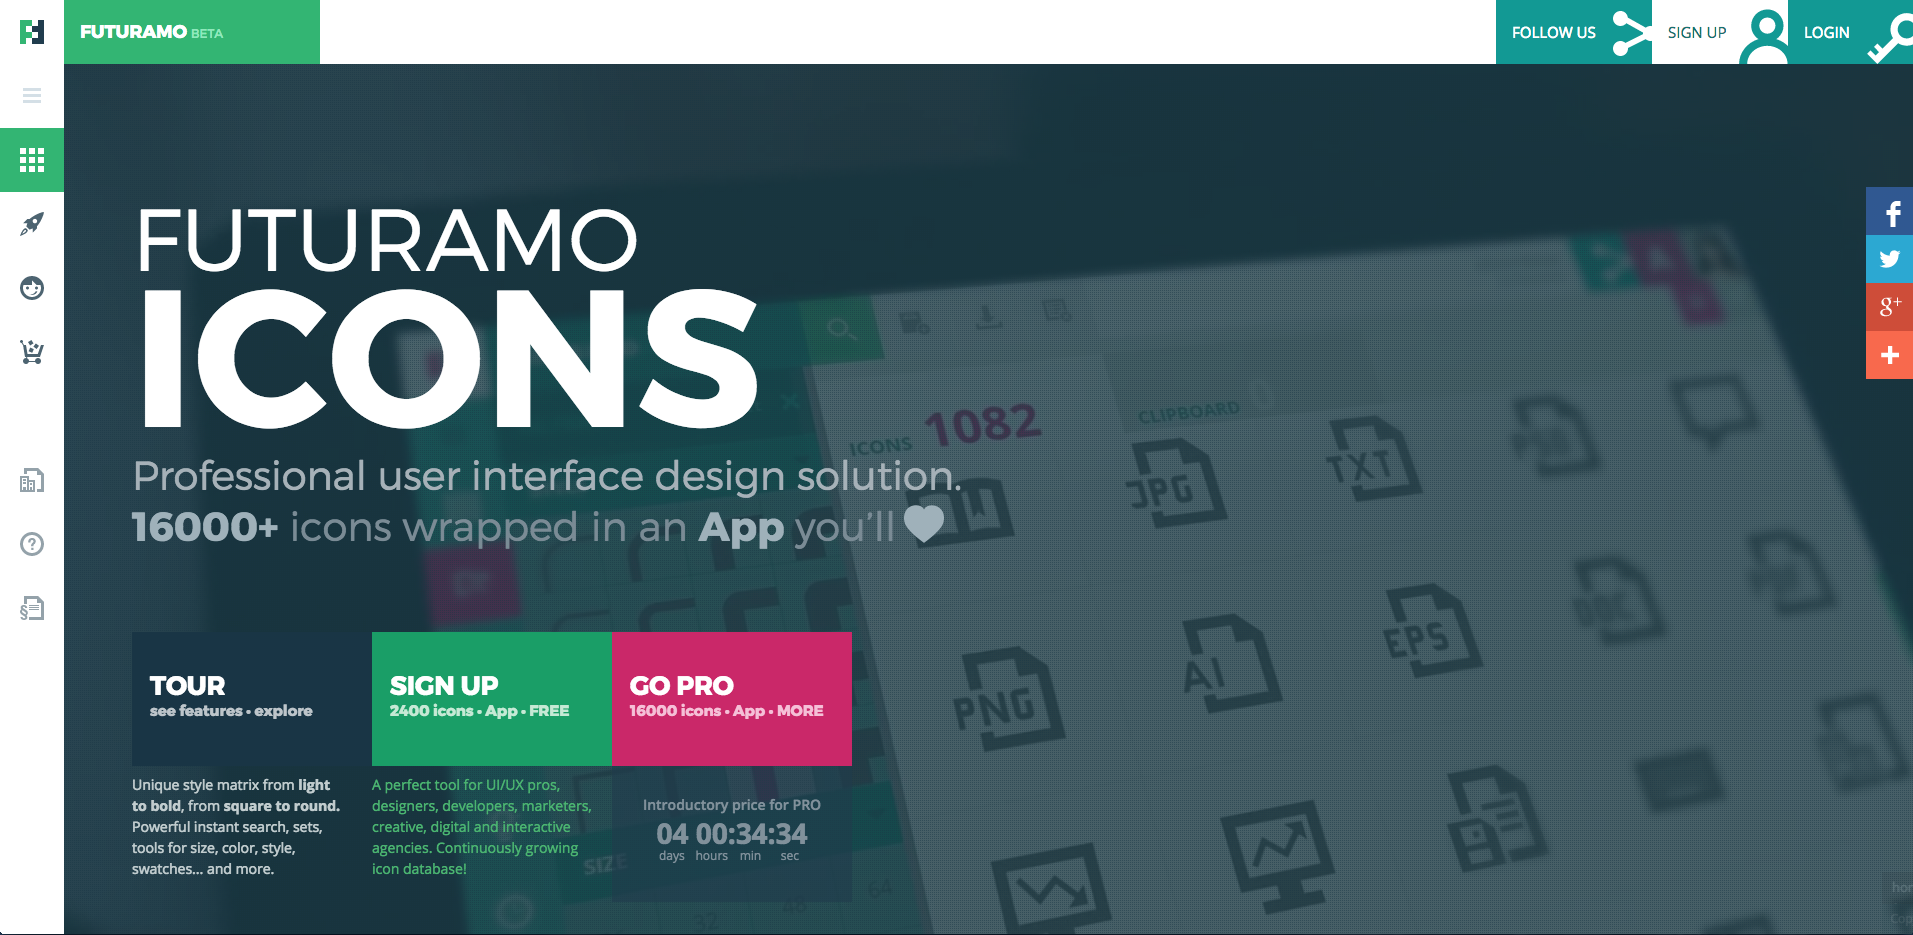 Futuramo Icons App Beta Site